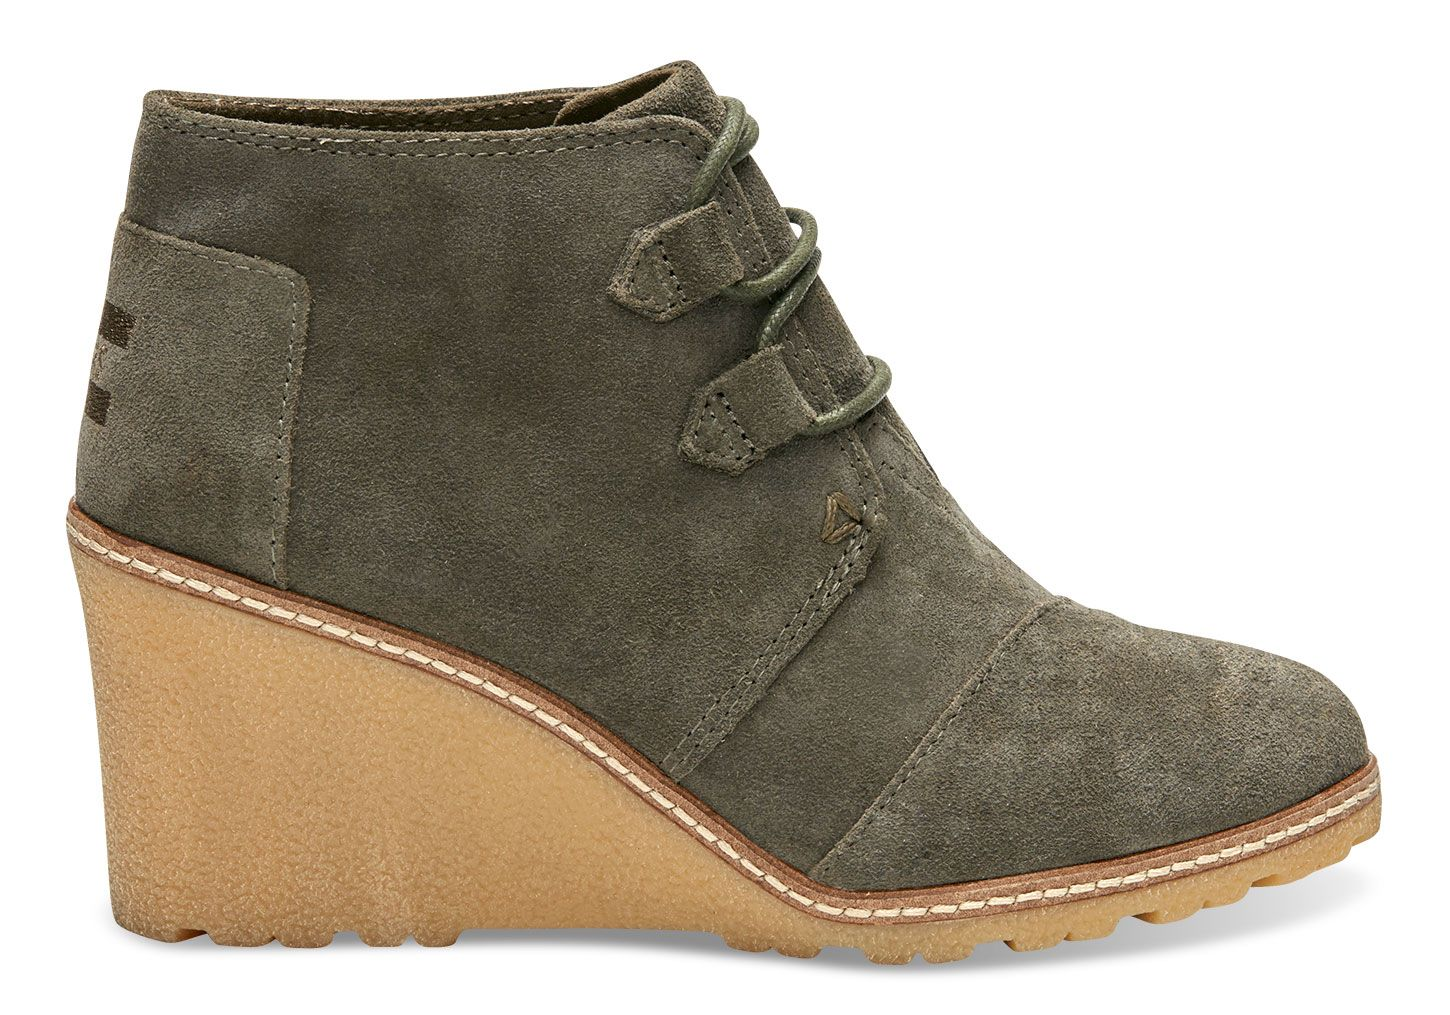 Tarmac Olive Suede and Faux Crepe Wedge Women's Desert Wedge Booties - Size  9 please :